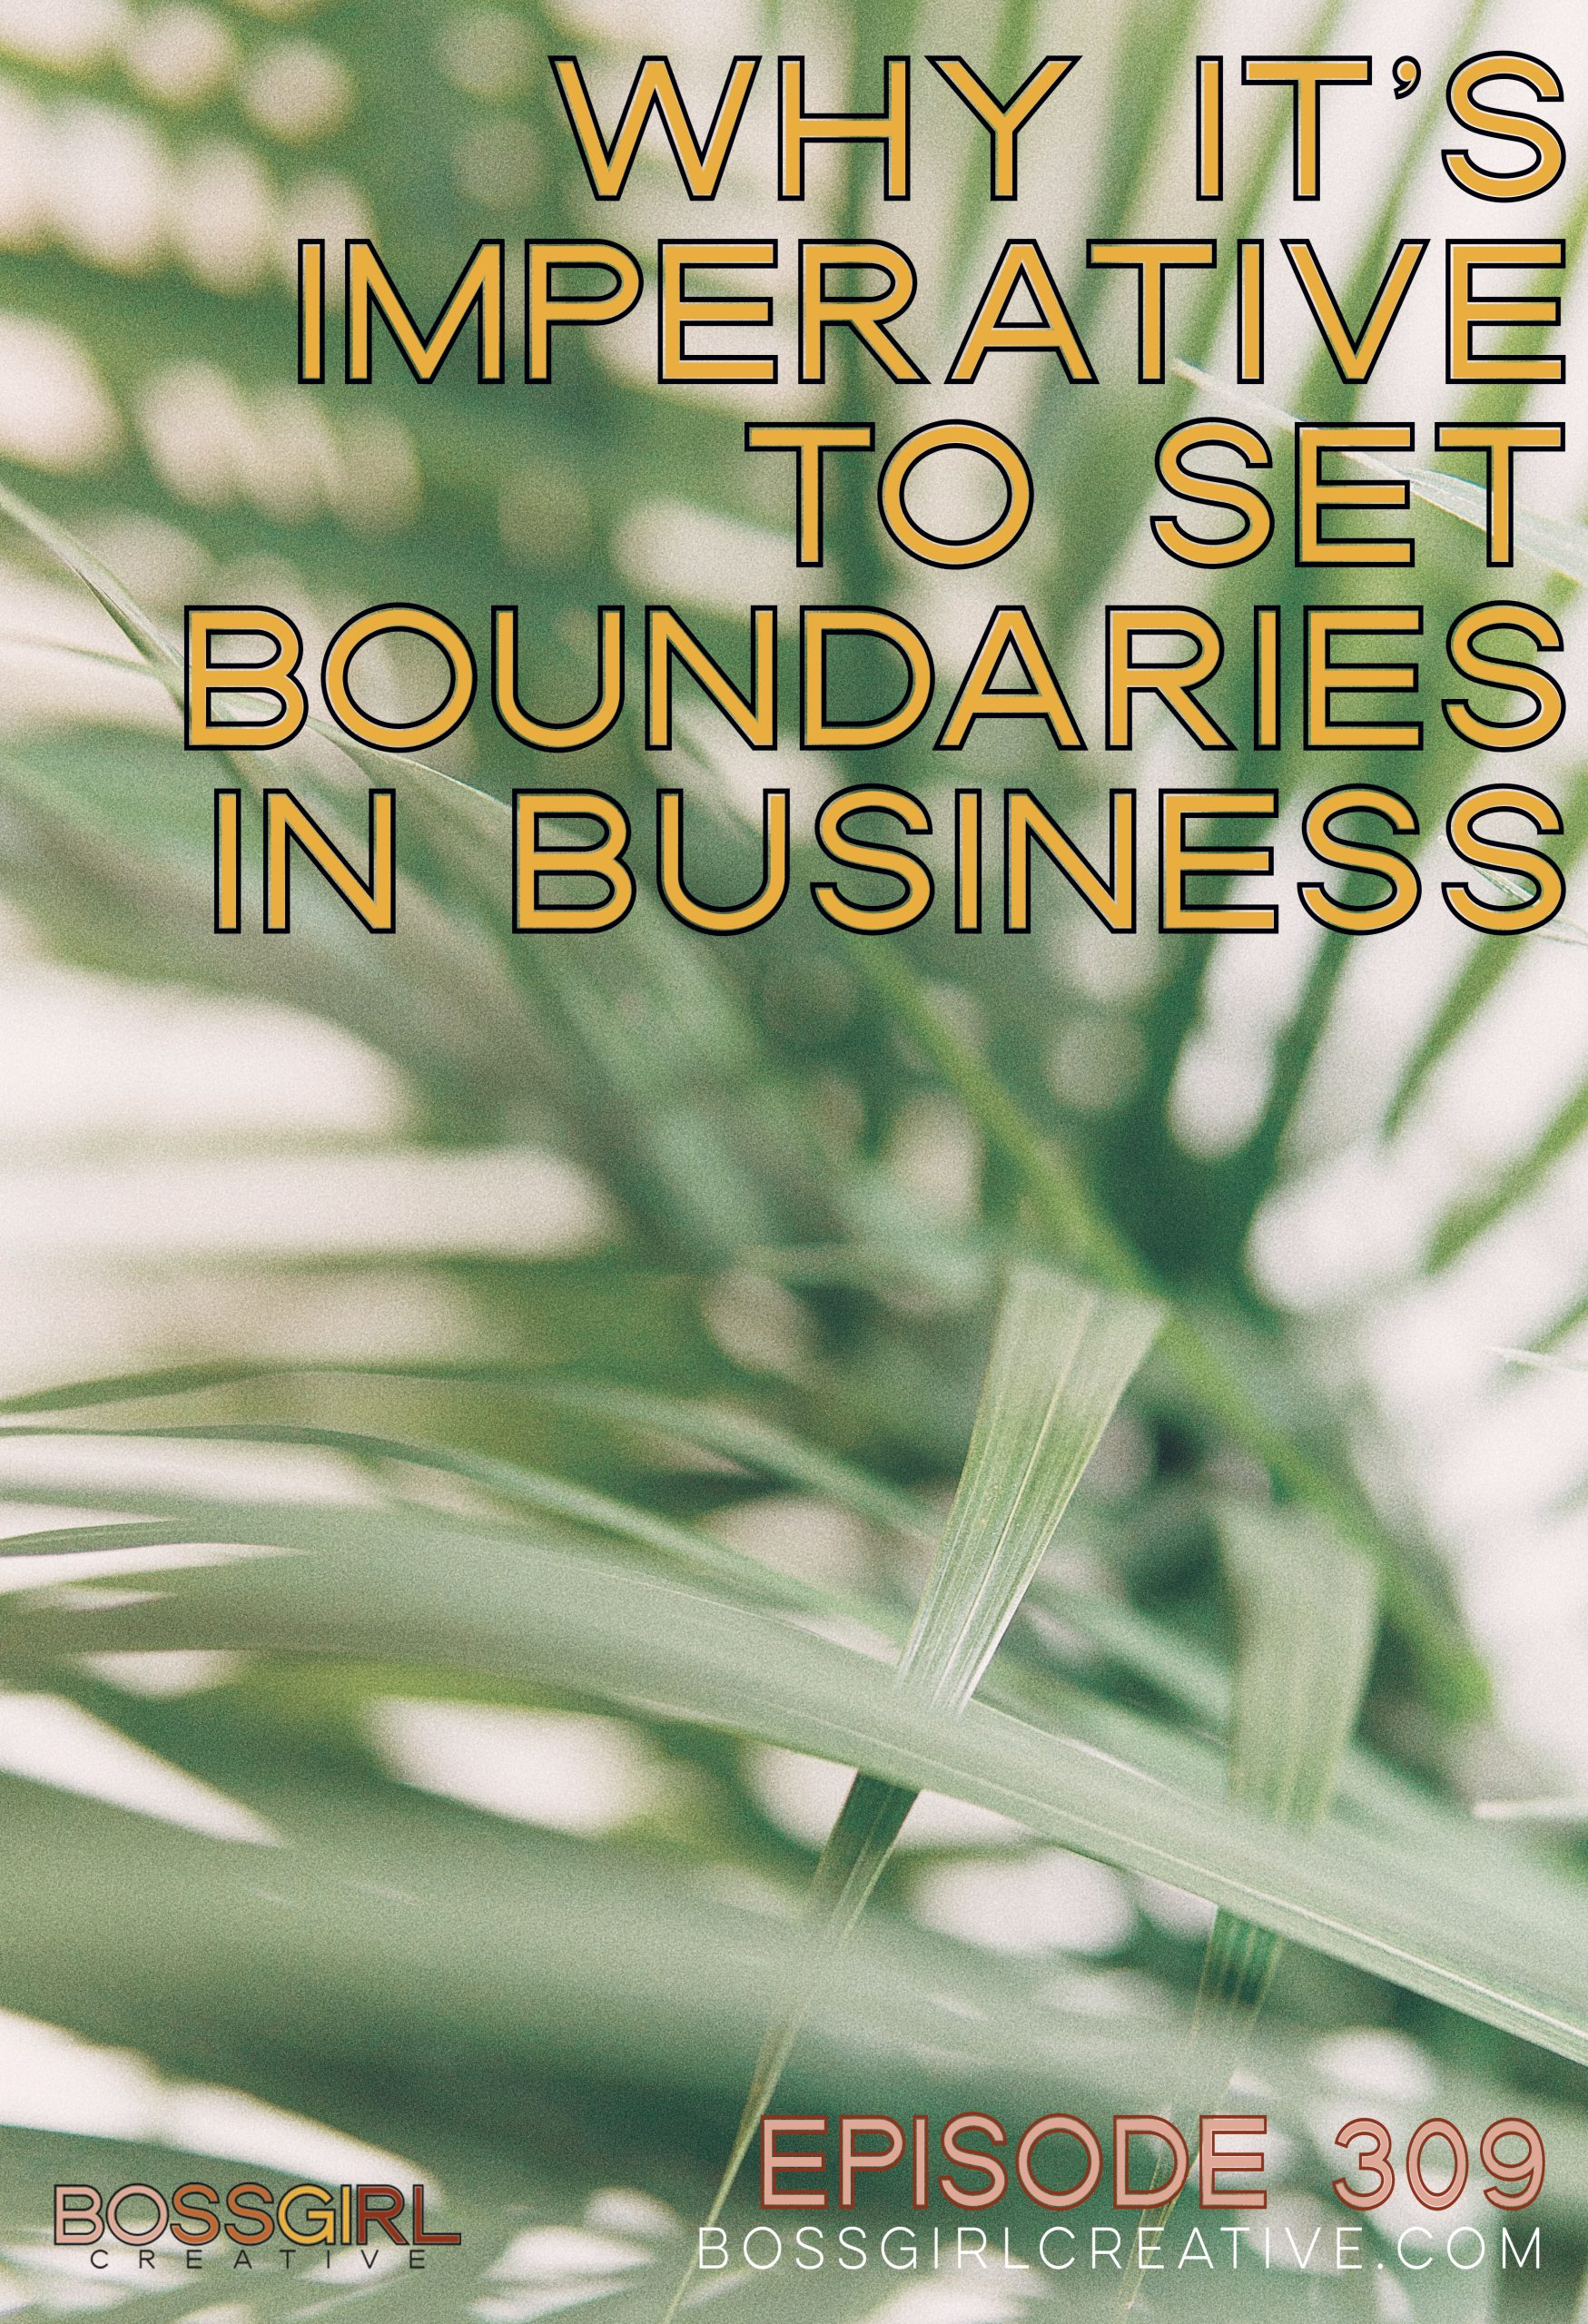 BGC Episode 309 - Why It's Imperative to Set Boundaries in Business